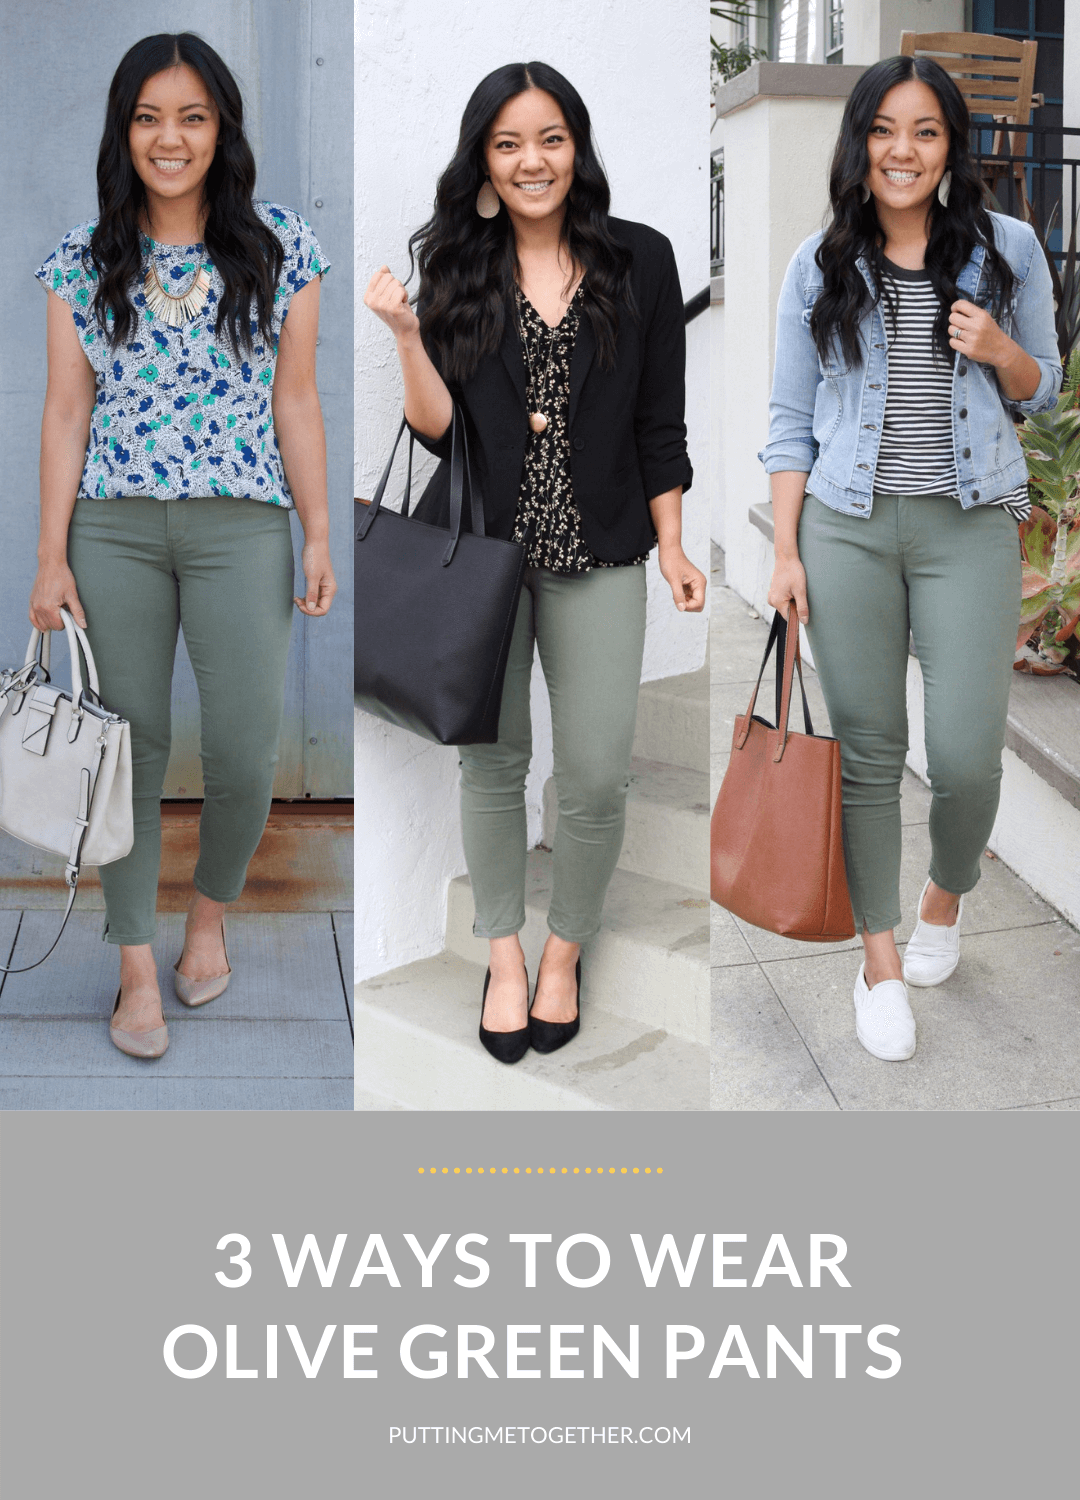 Three Olive Pants Outfits for Work and Casual